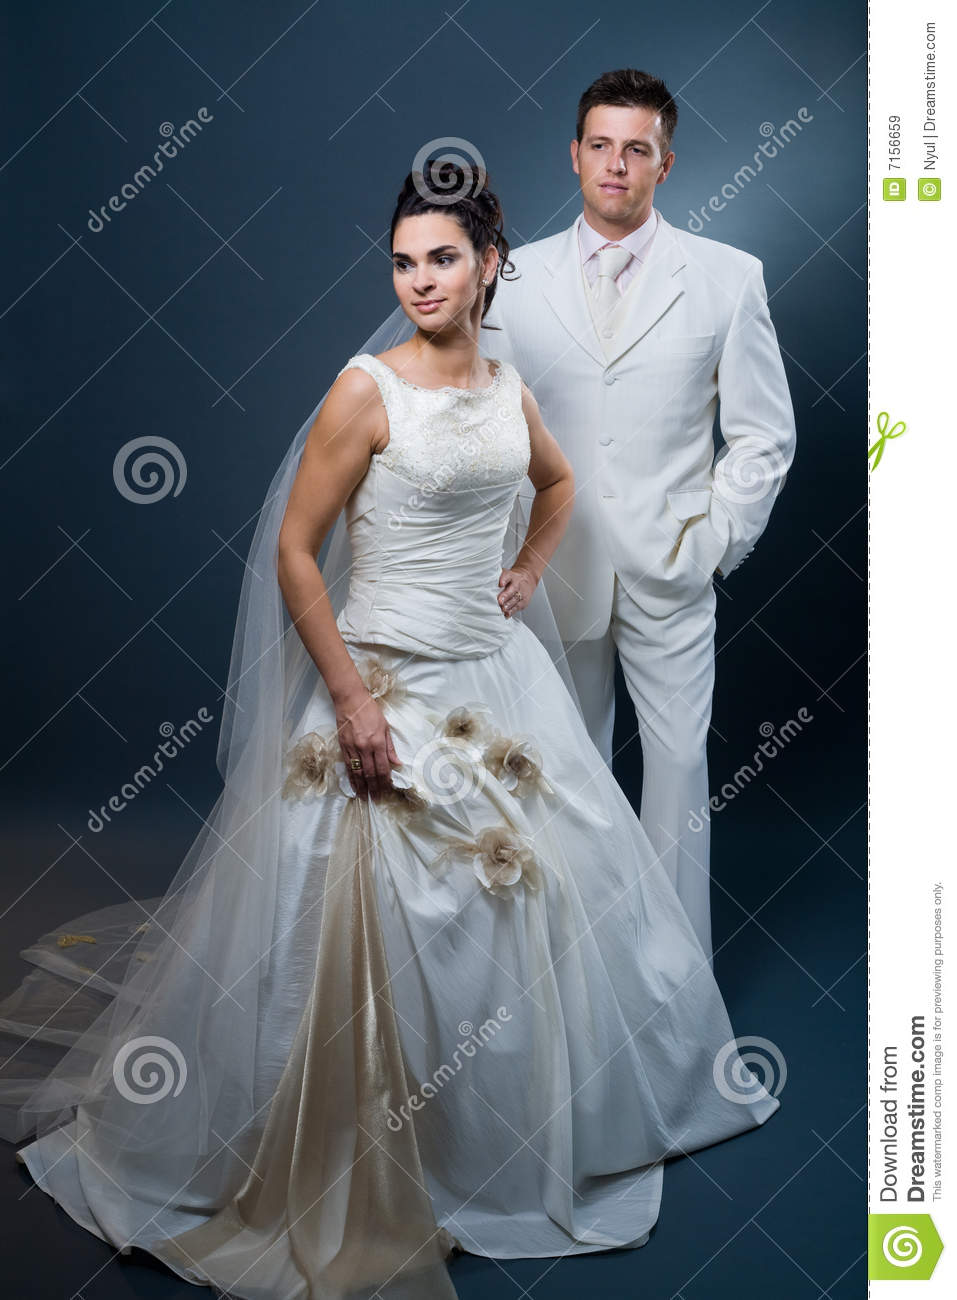 Bride And Groom In Wedding Dress Stock Image - Image of ...